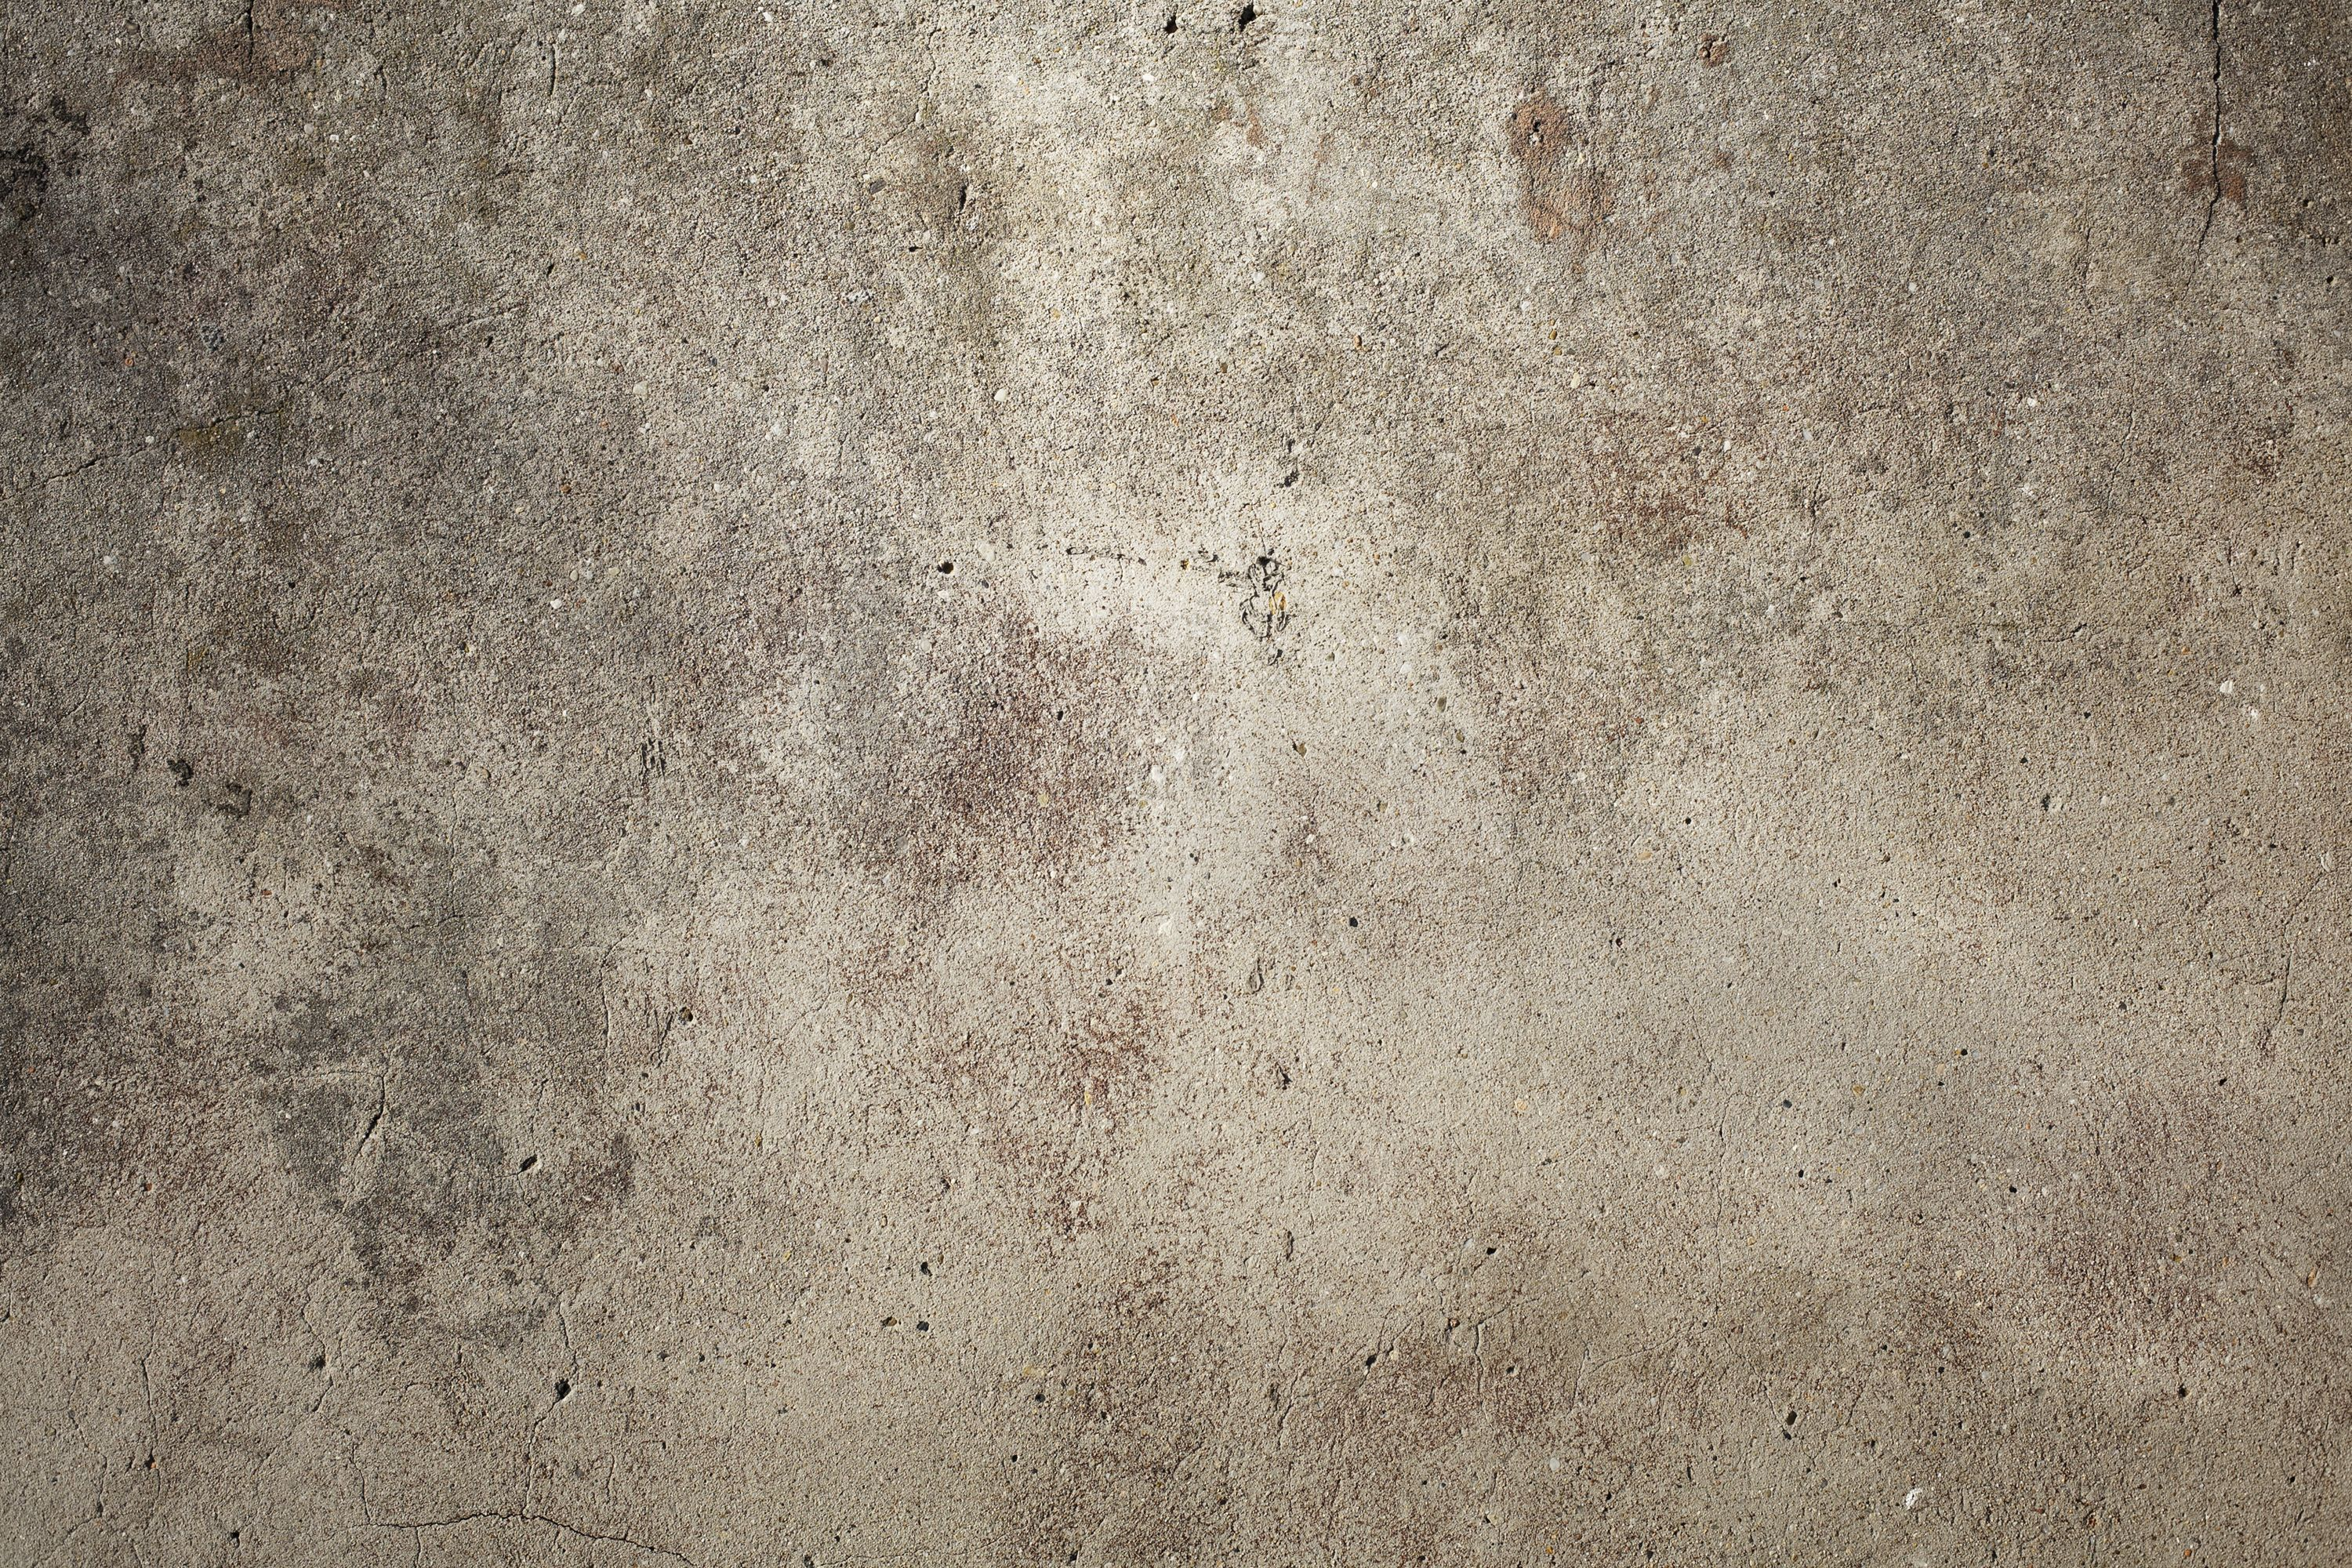 Wall texture google search concrete wall free resource for Wallpaper images for house walls